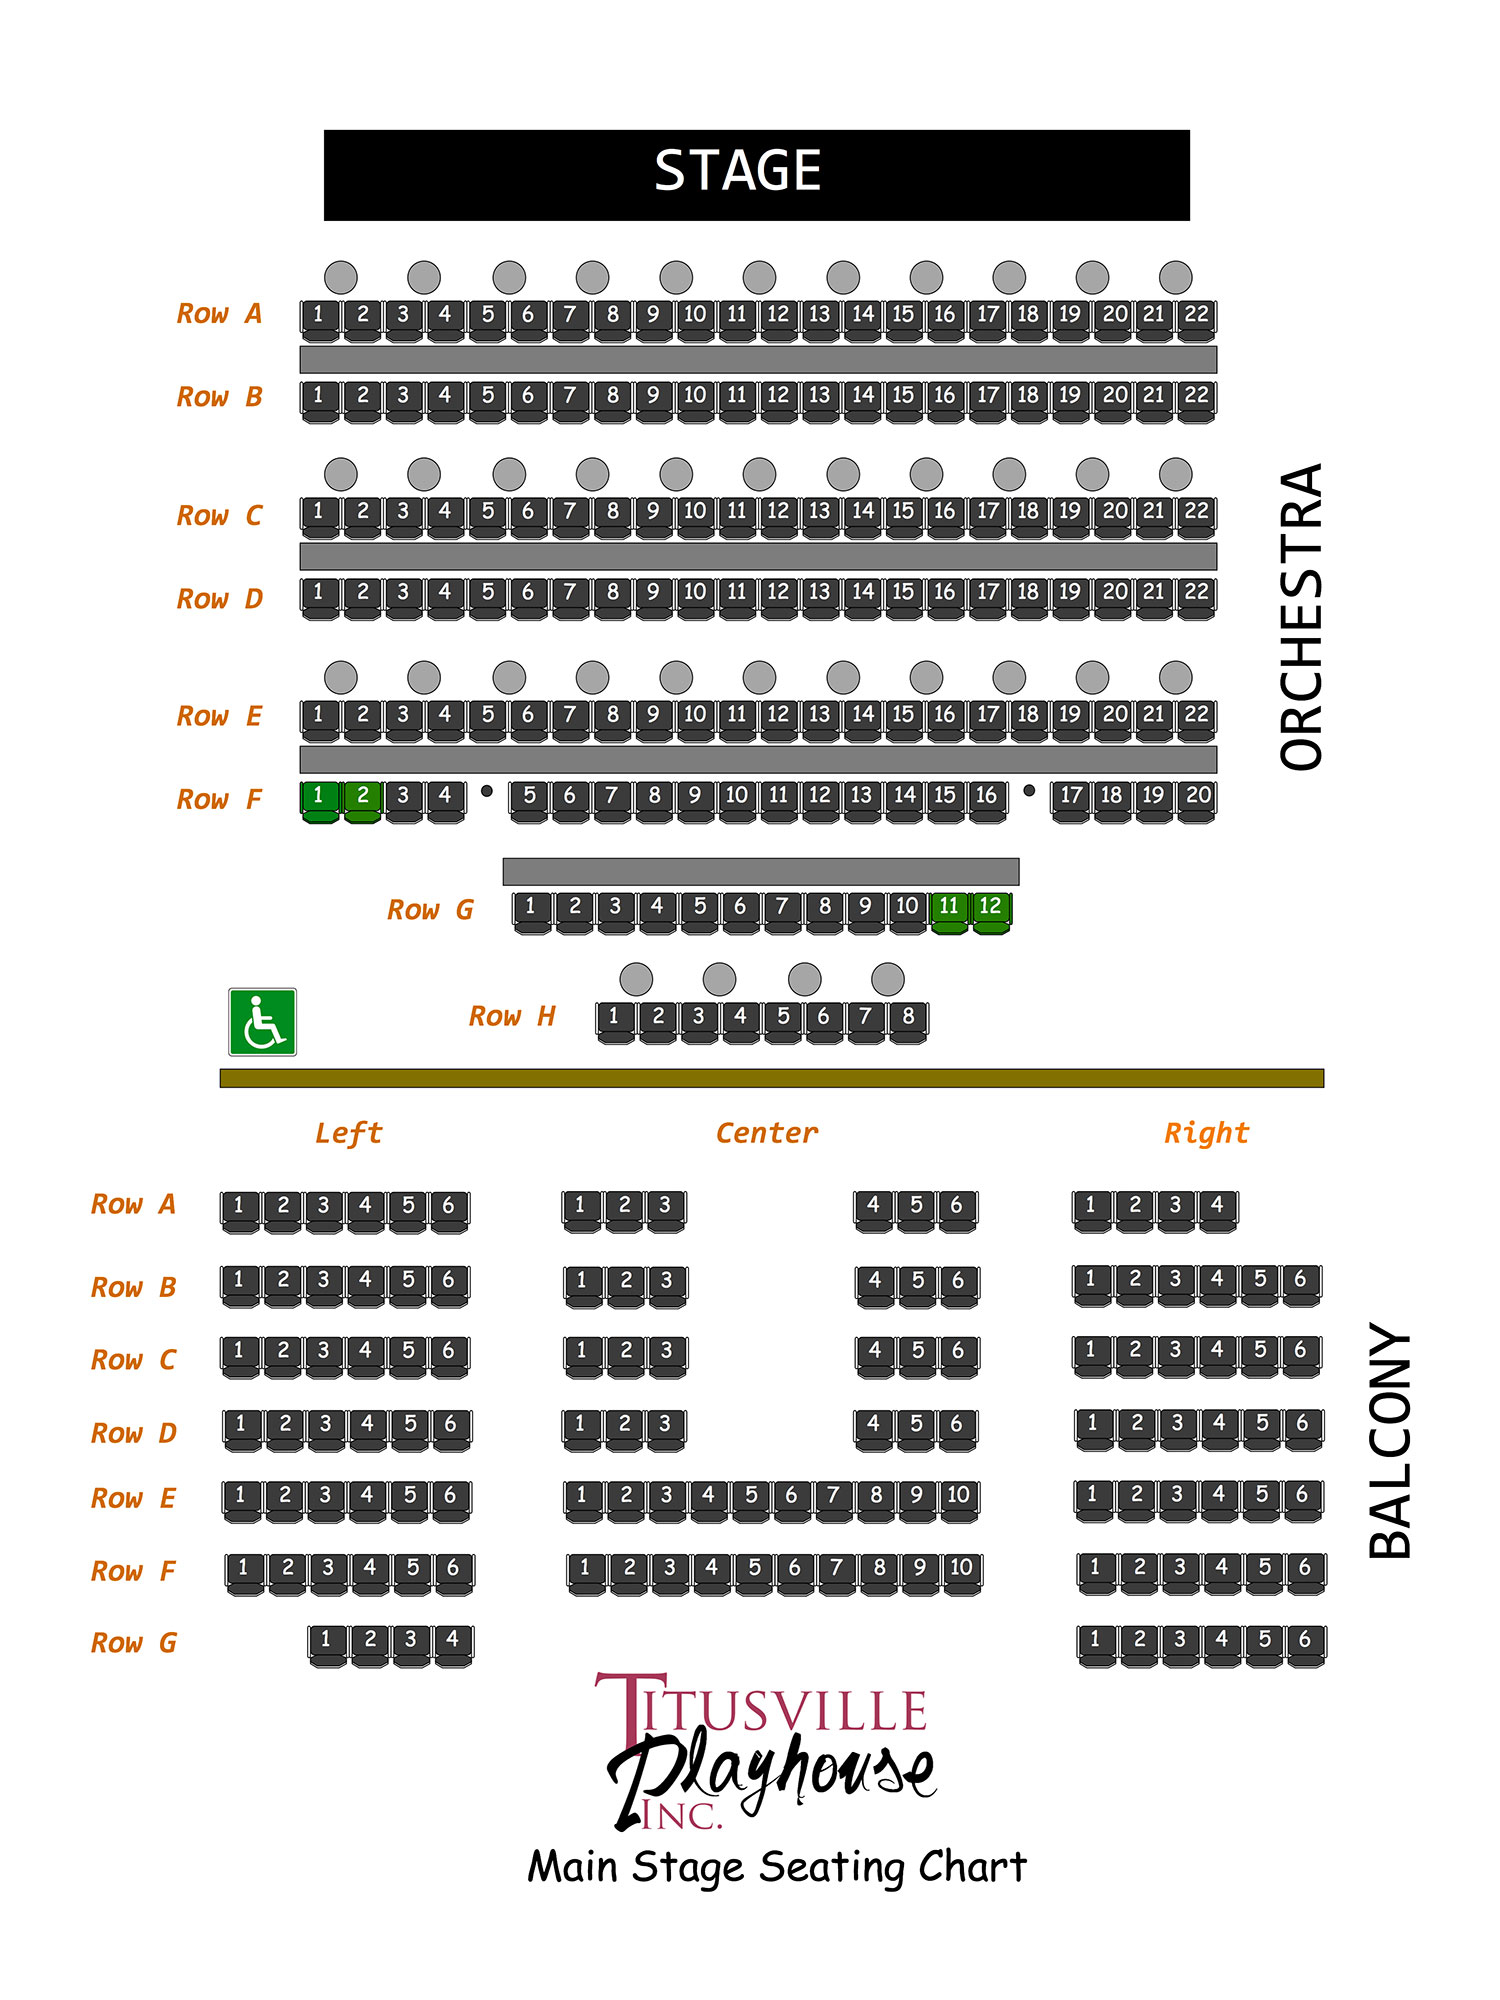 Titusville Playhouse Inc Venue Black Box Theatre Diagram Ucf Seating Charts Our 2nd Stage Was Opened In 2014 And Features A 42 Seat Blackbox To Present Dramas Comedies An Intimate Setting Is General Admission